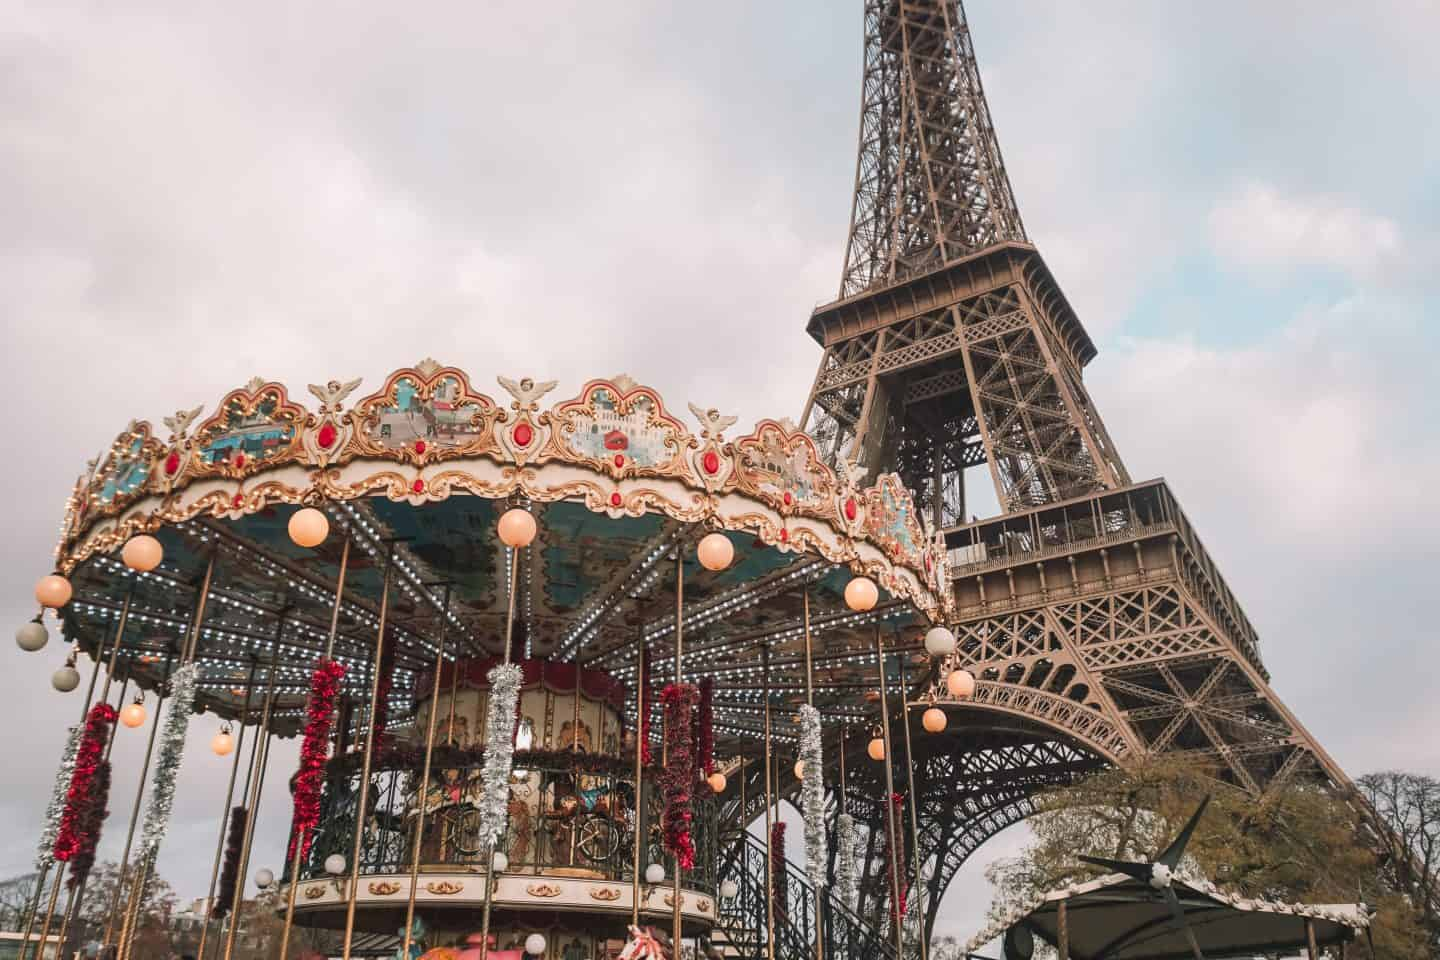 capturing the Trocadero carousel with Eiffel Tower view